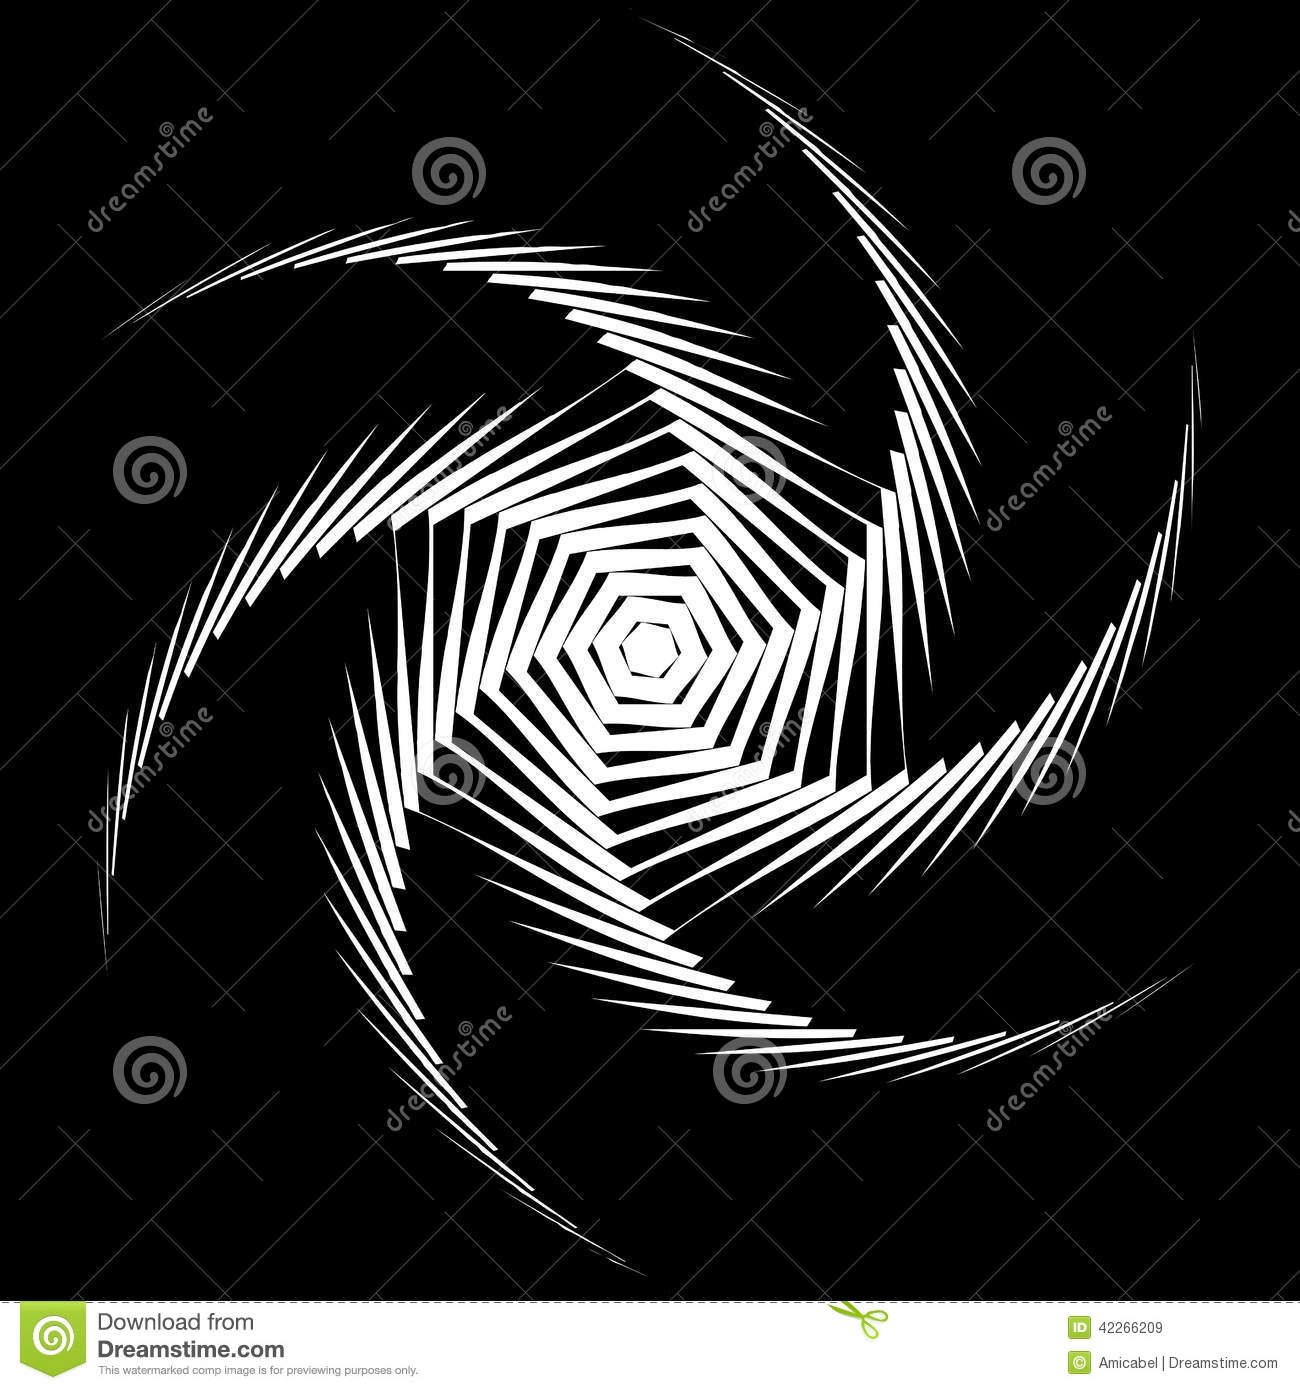 Elements Of Movement : Design monochrome whirl octopus background stock vector